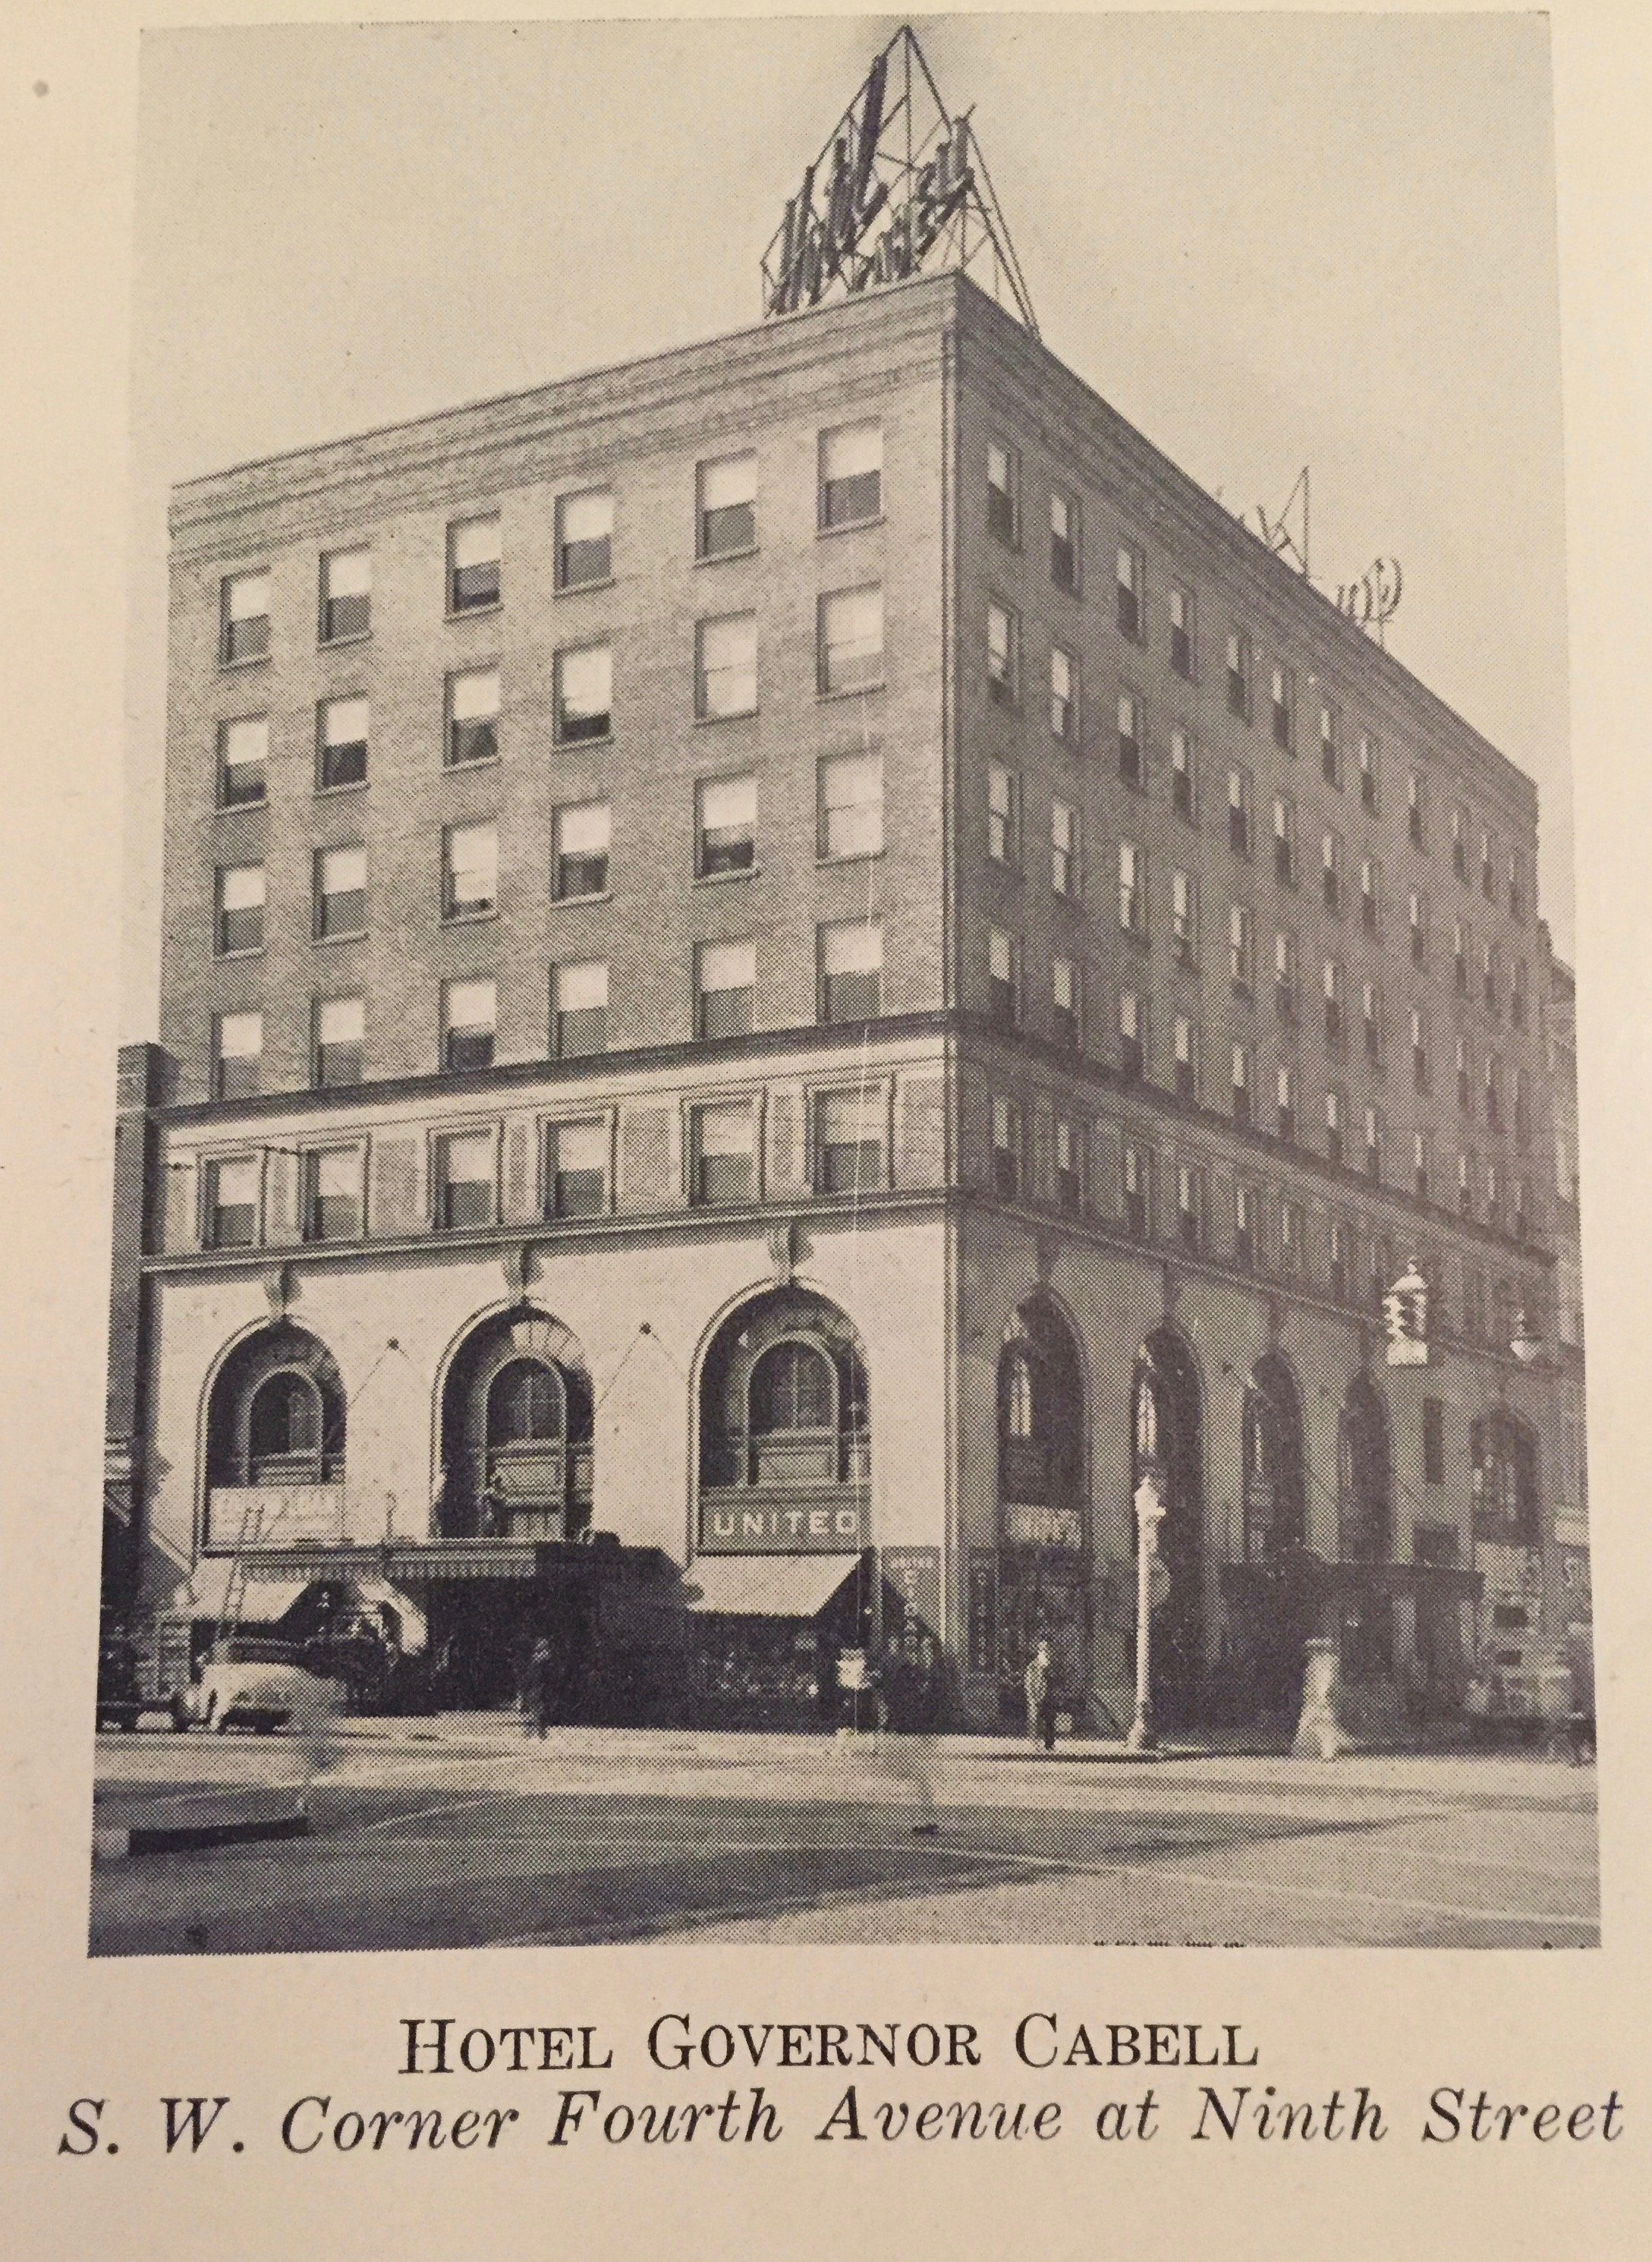 The Hotel Governor Cabell in the 1930s.